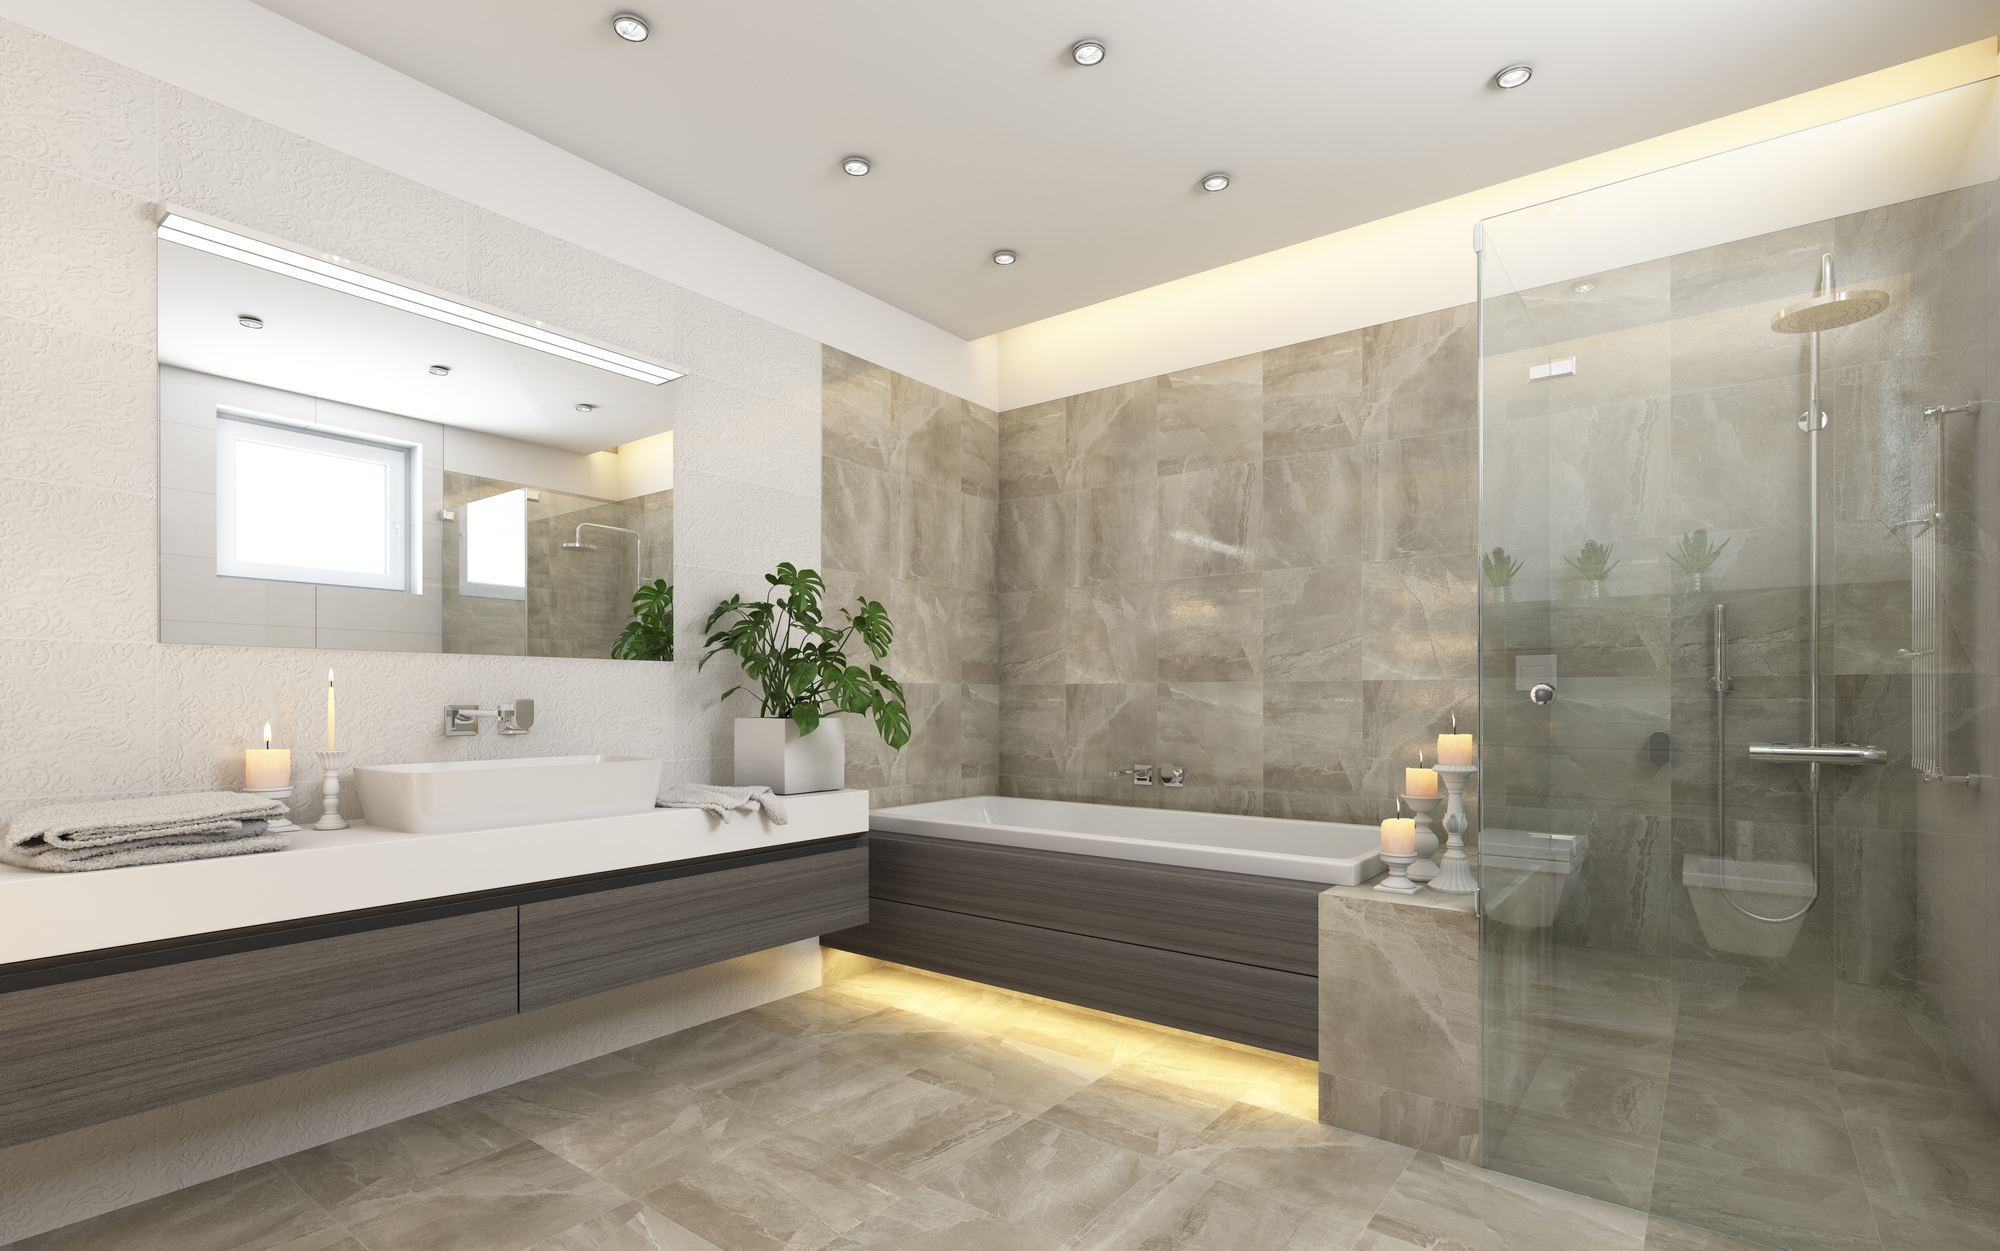 10 Common Features of Luxury Bathroom Designs